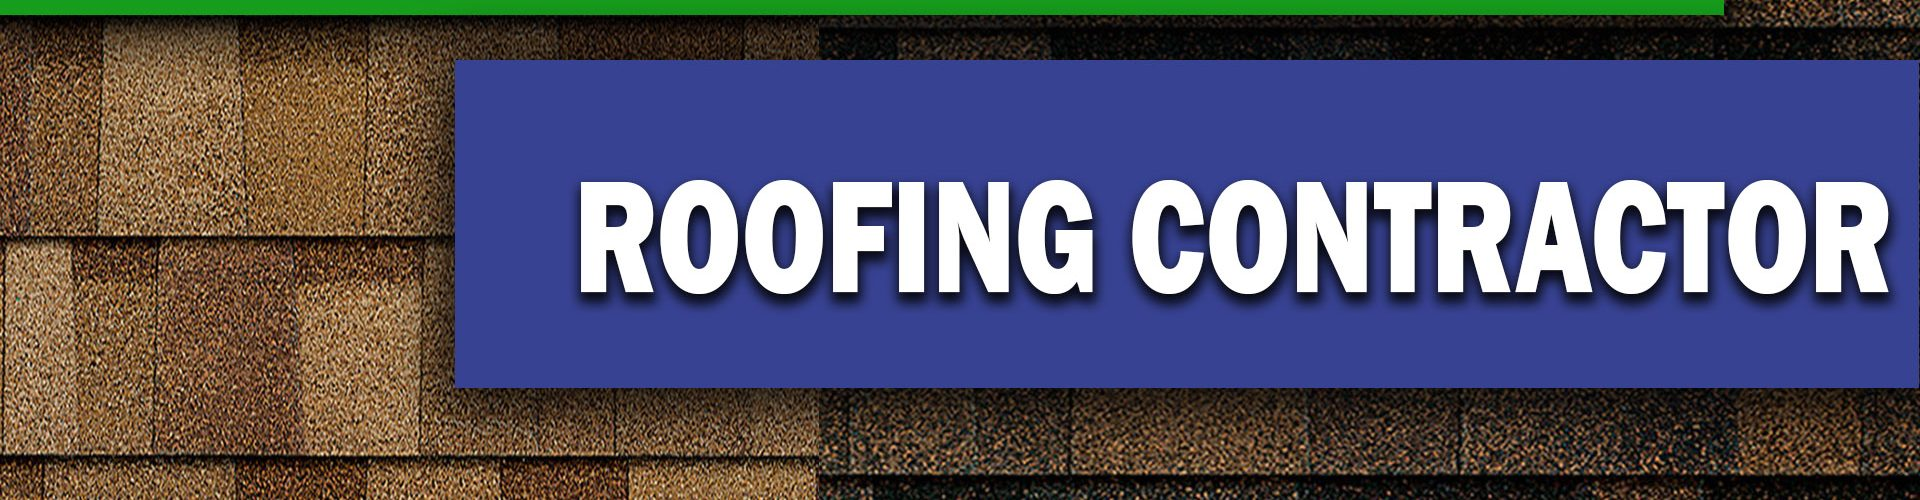 USEFUL WAYS TO IDENTIFY A STORM CHASING ROOFING CONTRACTOR